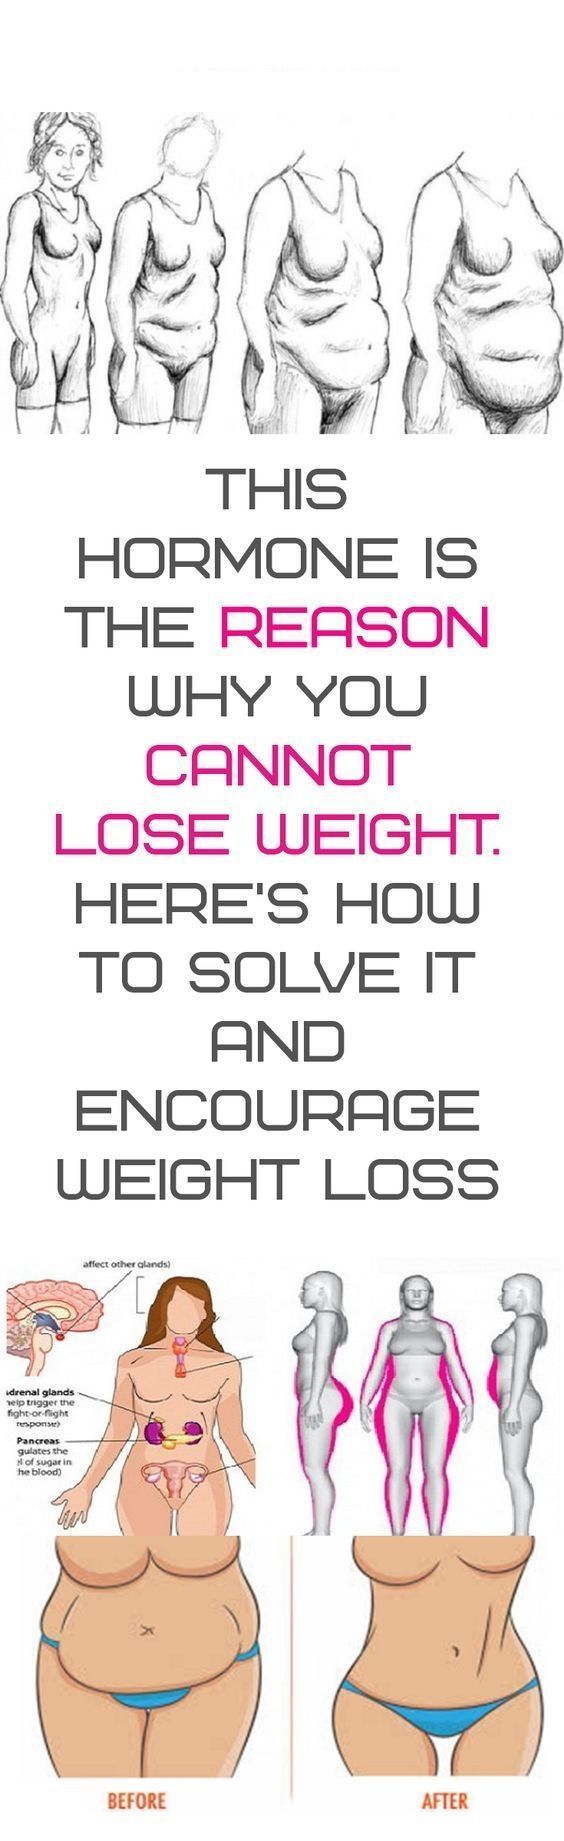 How come am I not losing weight?  What causes me to lose weight unsuccessfully over and over again?If you struggled with these questions and don't know what to do next, read on as maybe hormones are to blame when it comes to your unsuccessful attempt to lose weight.